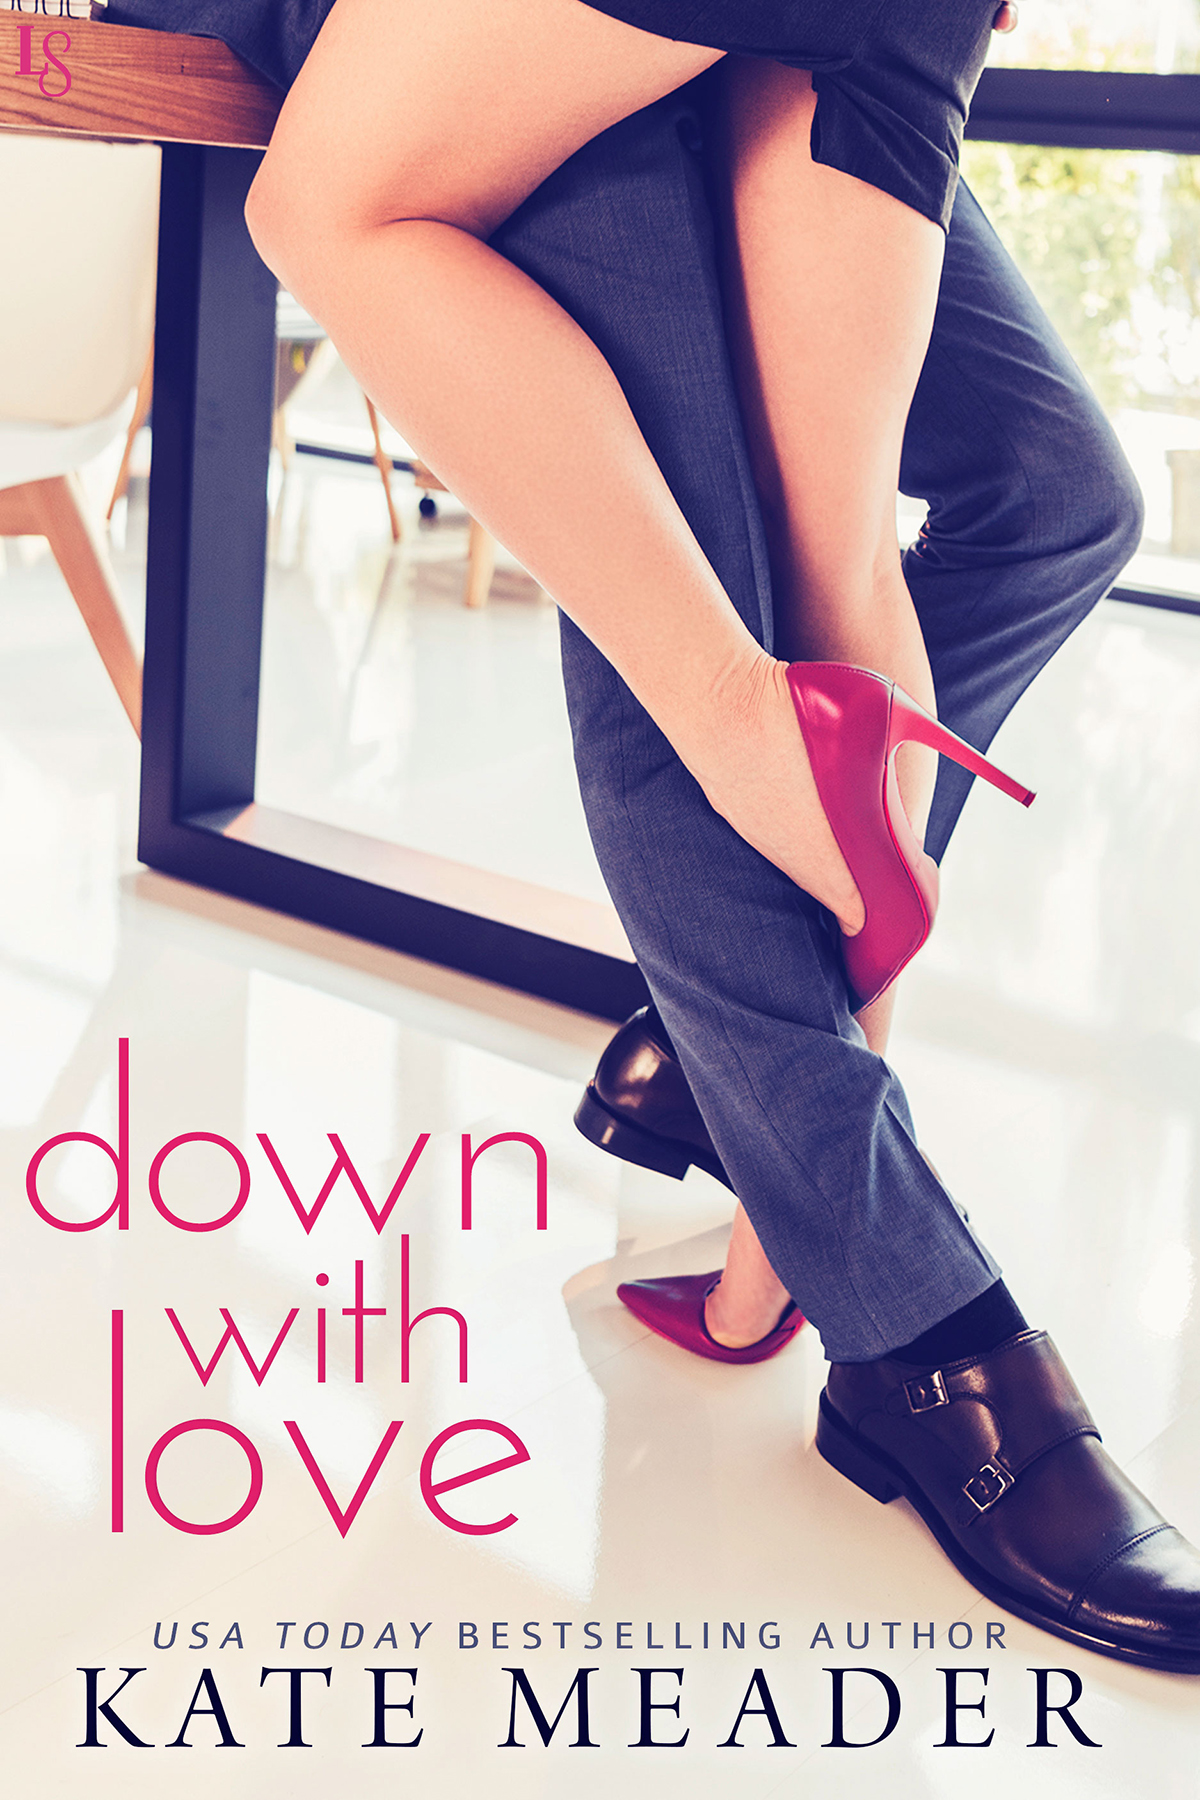 DownWithLove-Meader-4x6.jpg